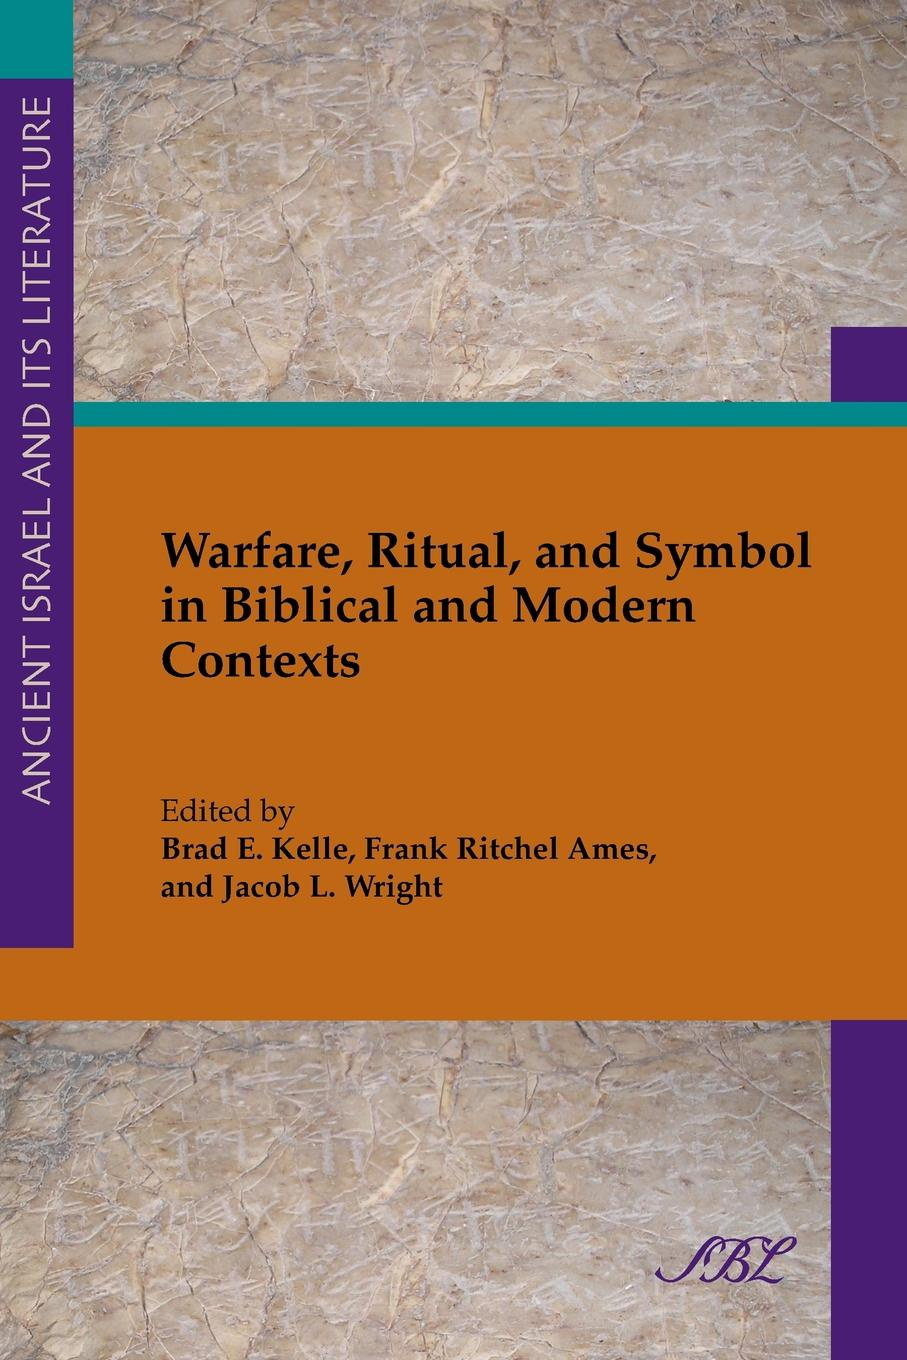 Brad Kelle, Frank Ames, Jean Wright Warfare, Ritual, and Symbol in Biblical and Modern Contexts